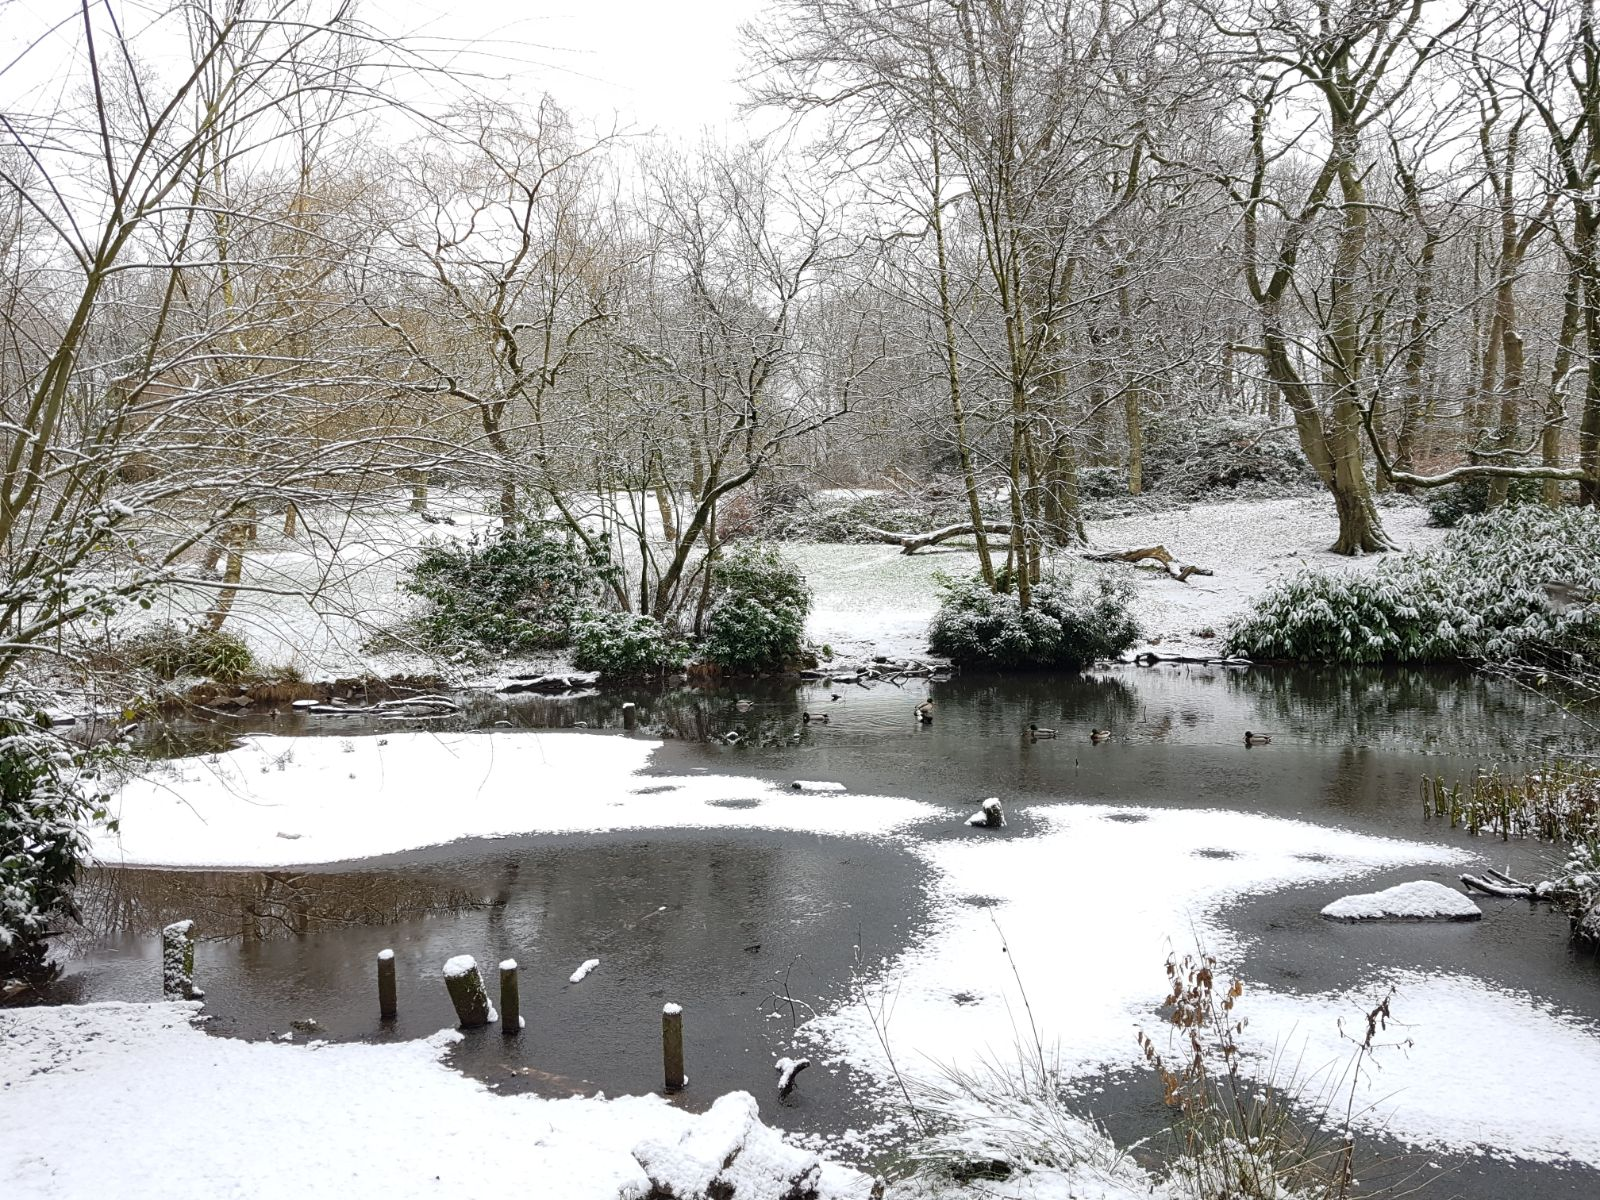 Heaton Park in the snow, December 2017